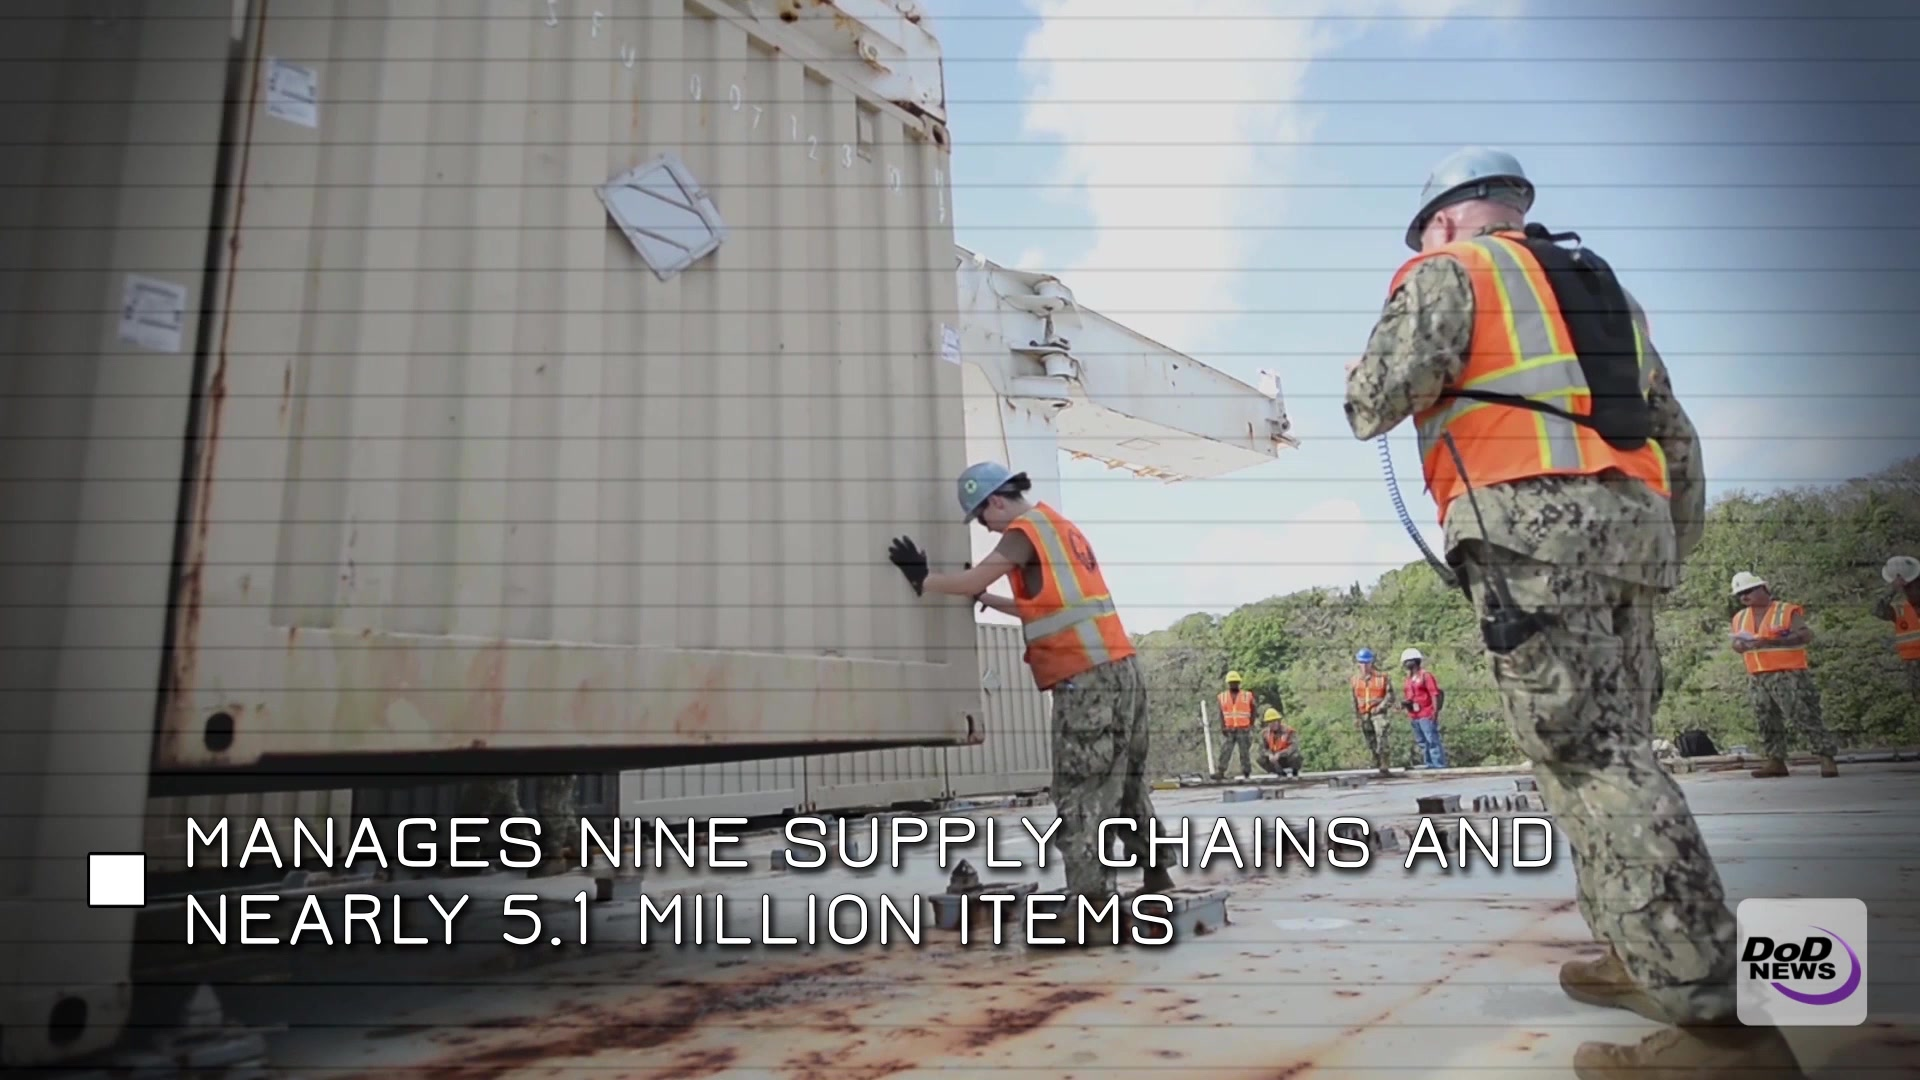 The Defense Logistics Agency provides a number of services to the Department of Defense and a number of Federal agencies. DLA sources and provides nearly all of the consumable items America's military forces need to operate – from food, fuel and energy to uniforms, medical supplies and construction material, Dec. 7, 2016.